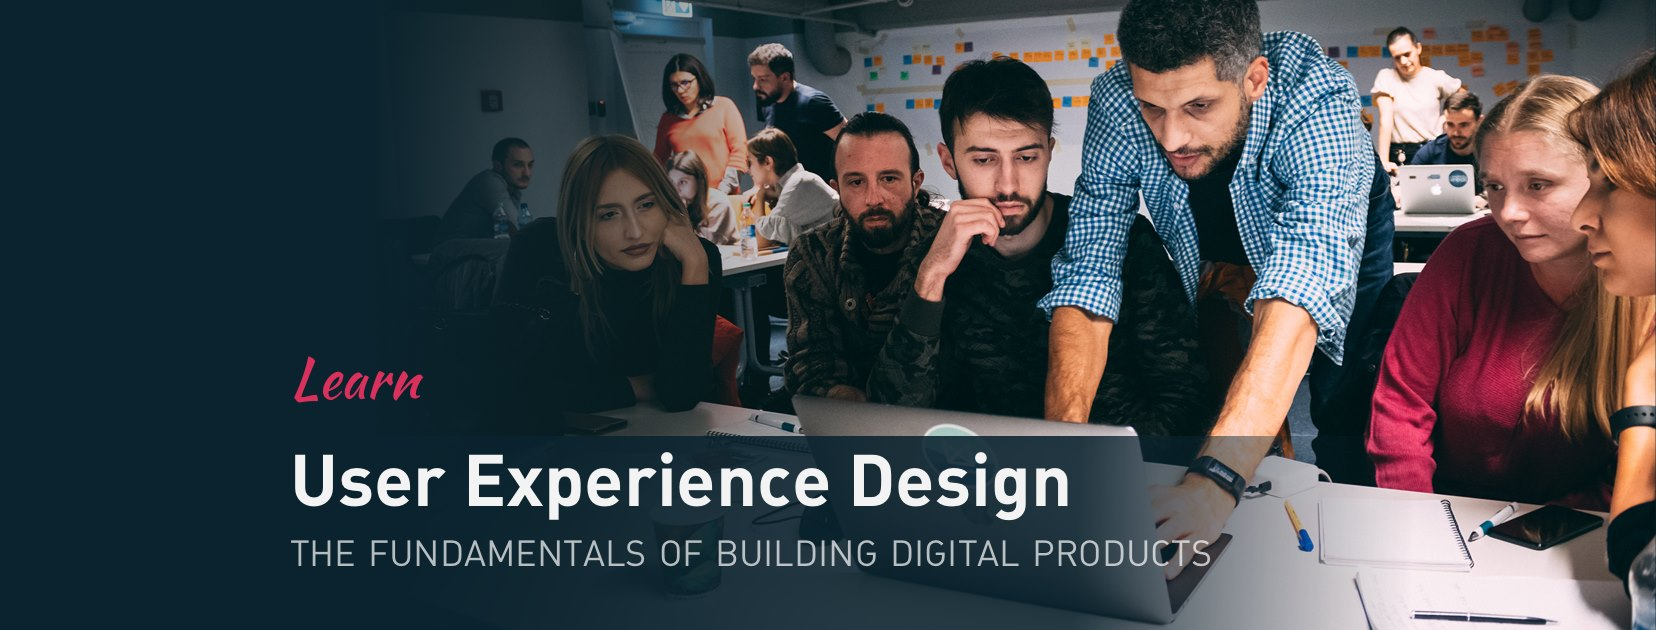 Curs User Experience Design